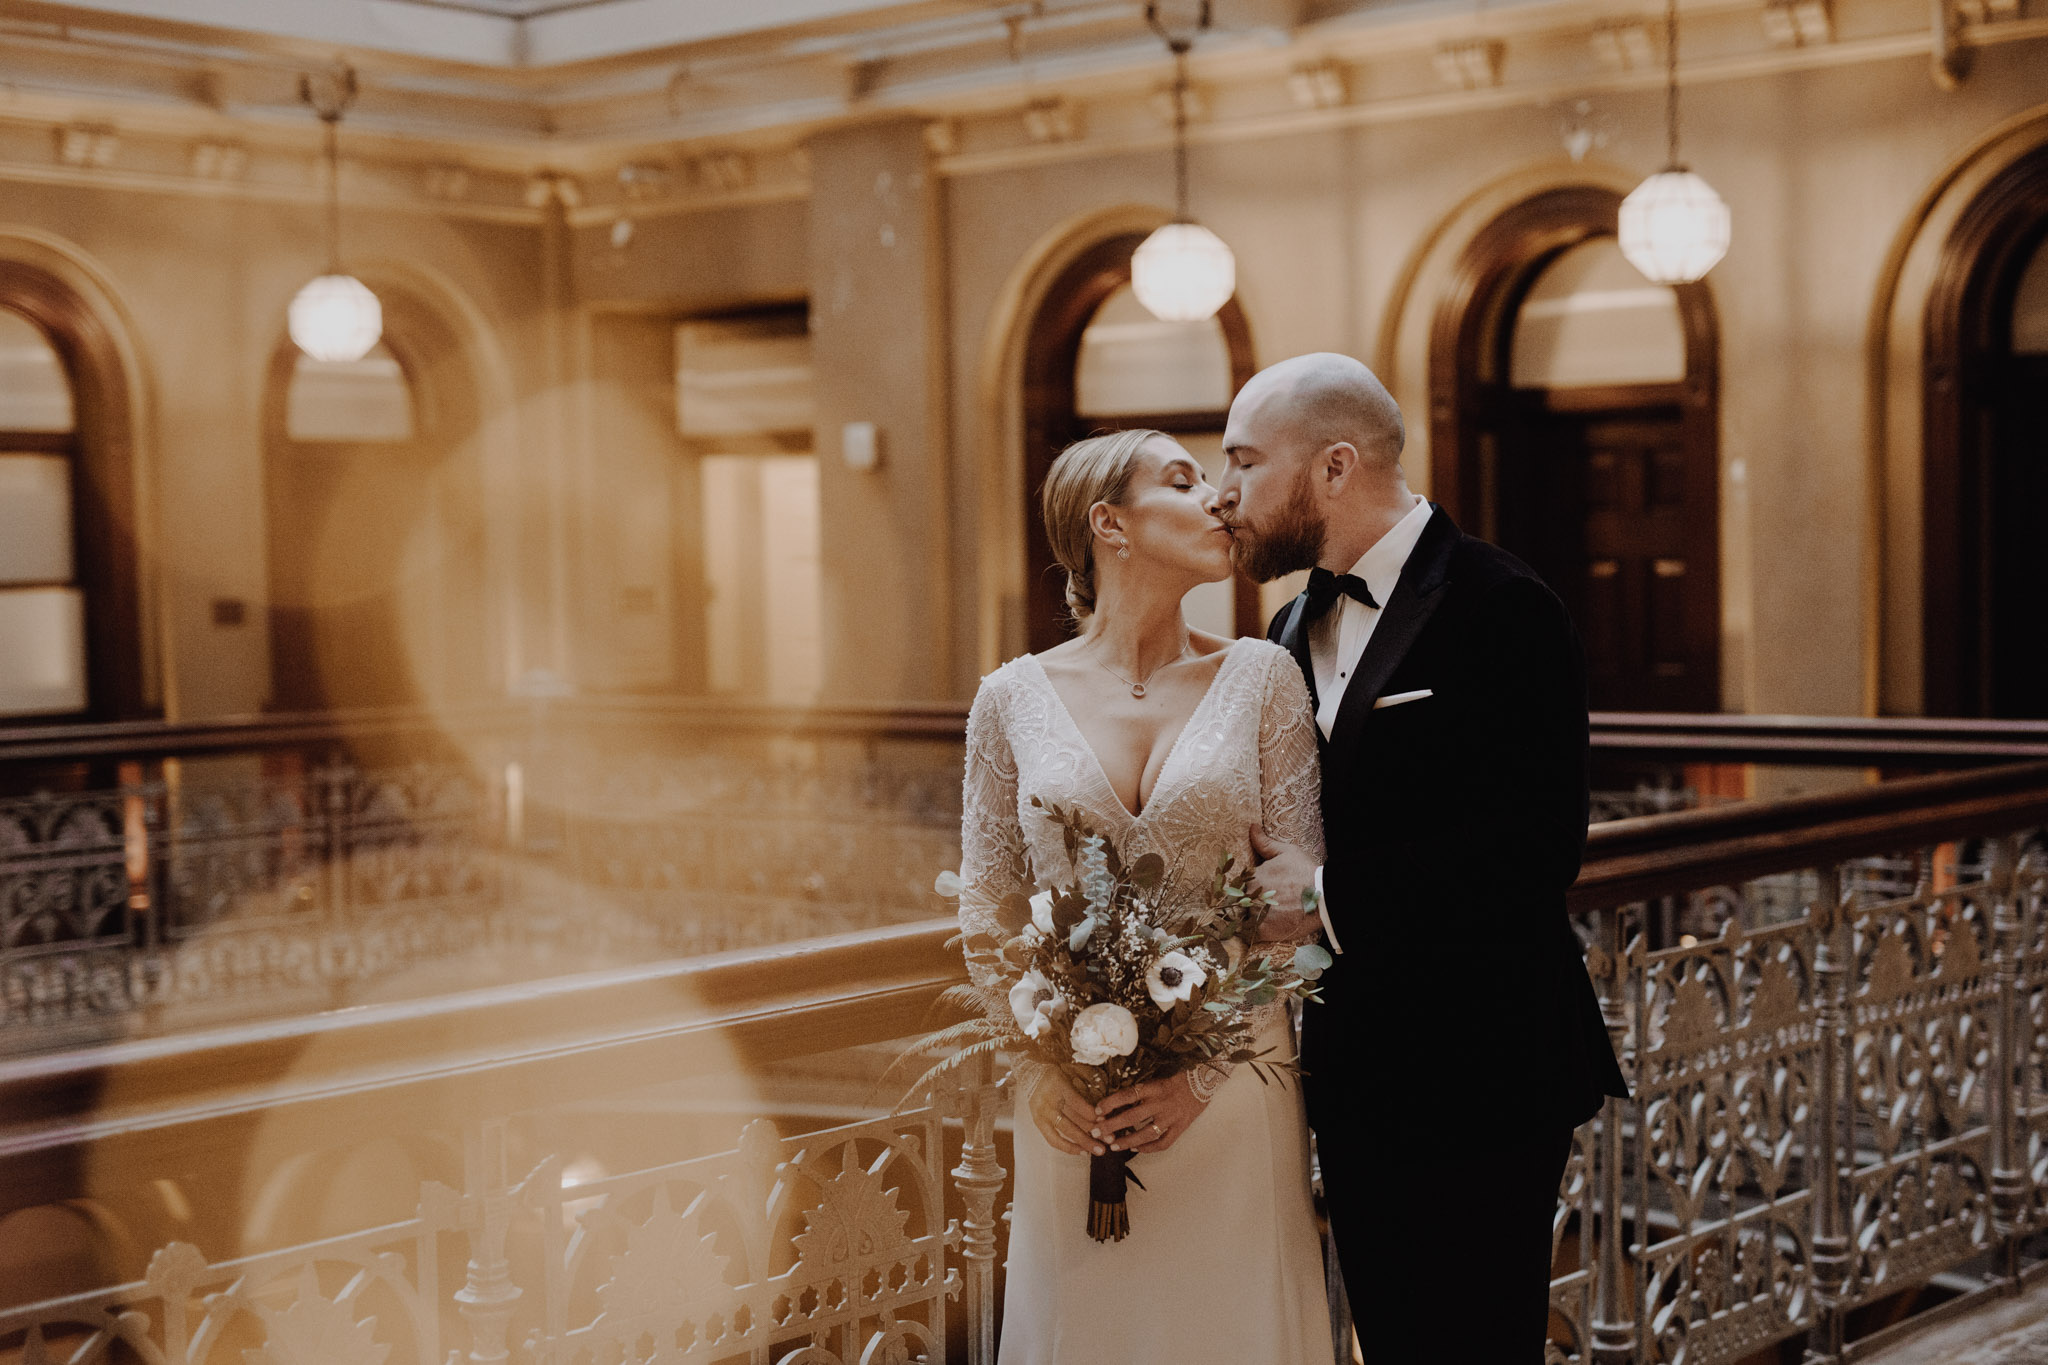 Downtown NYC Wedding - The Beekman Hotel - kissing on the balcony